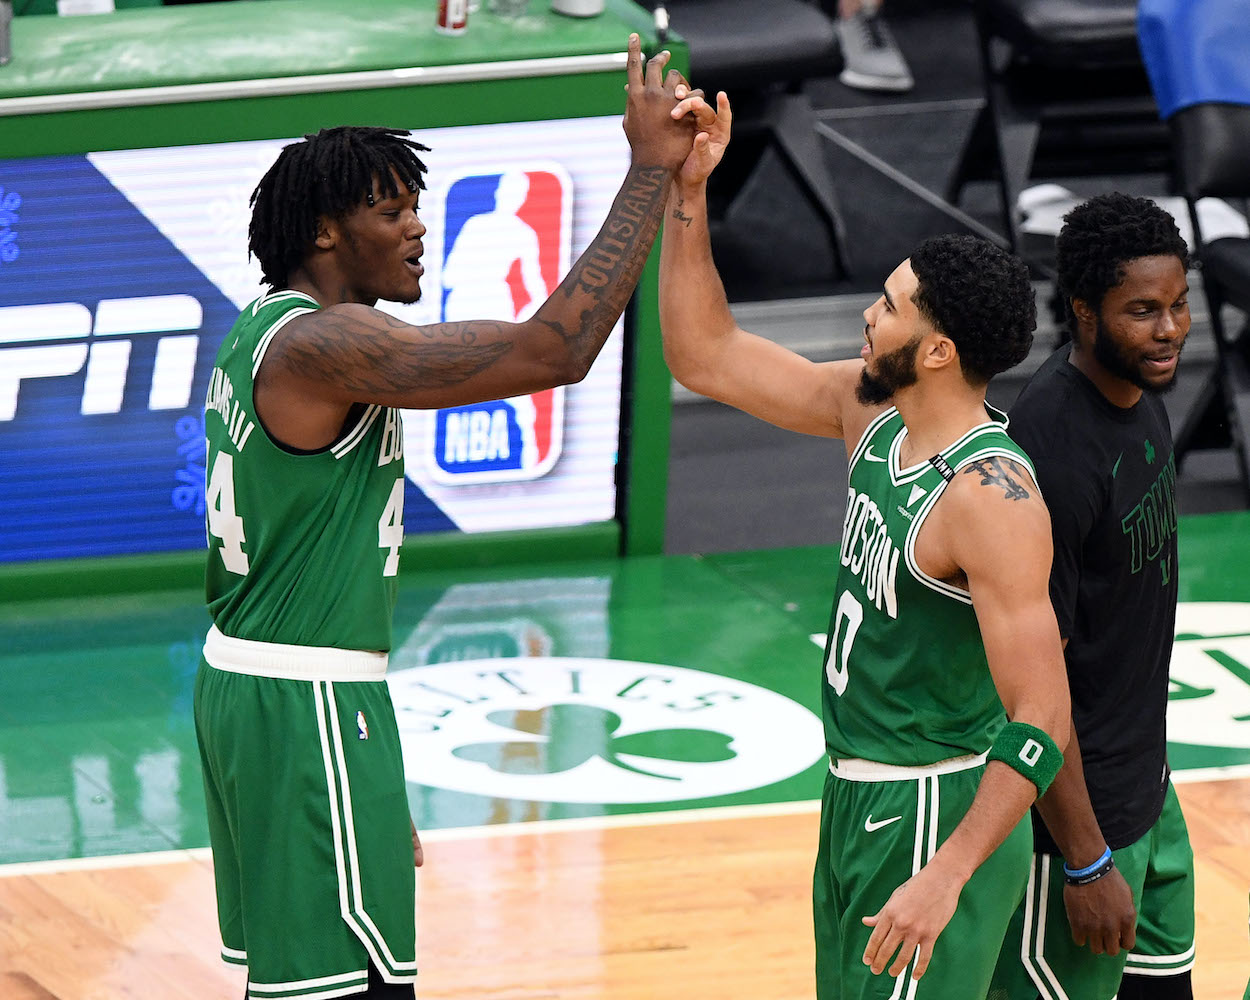 Boston Celtics players Robert Williams and Jayson Tatum